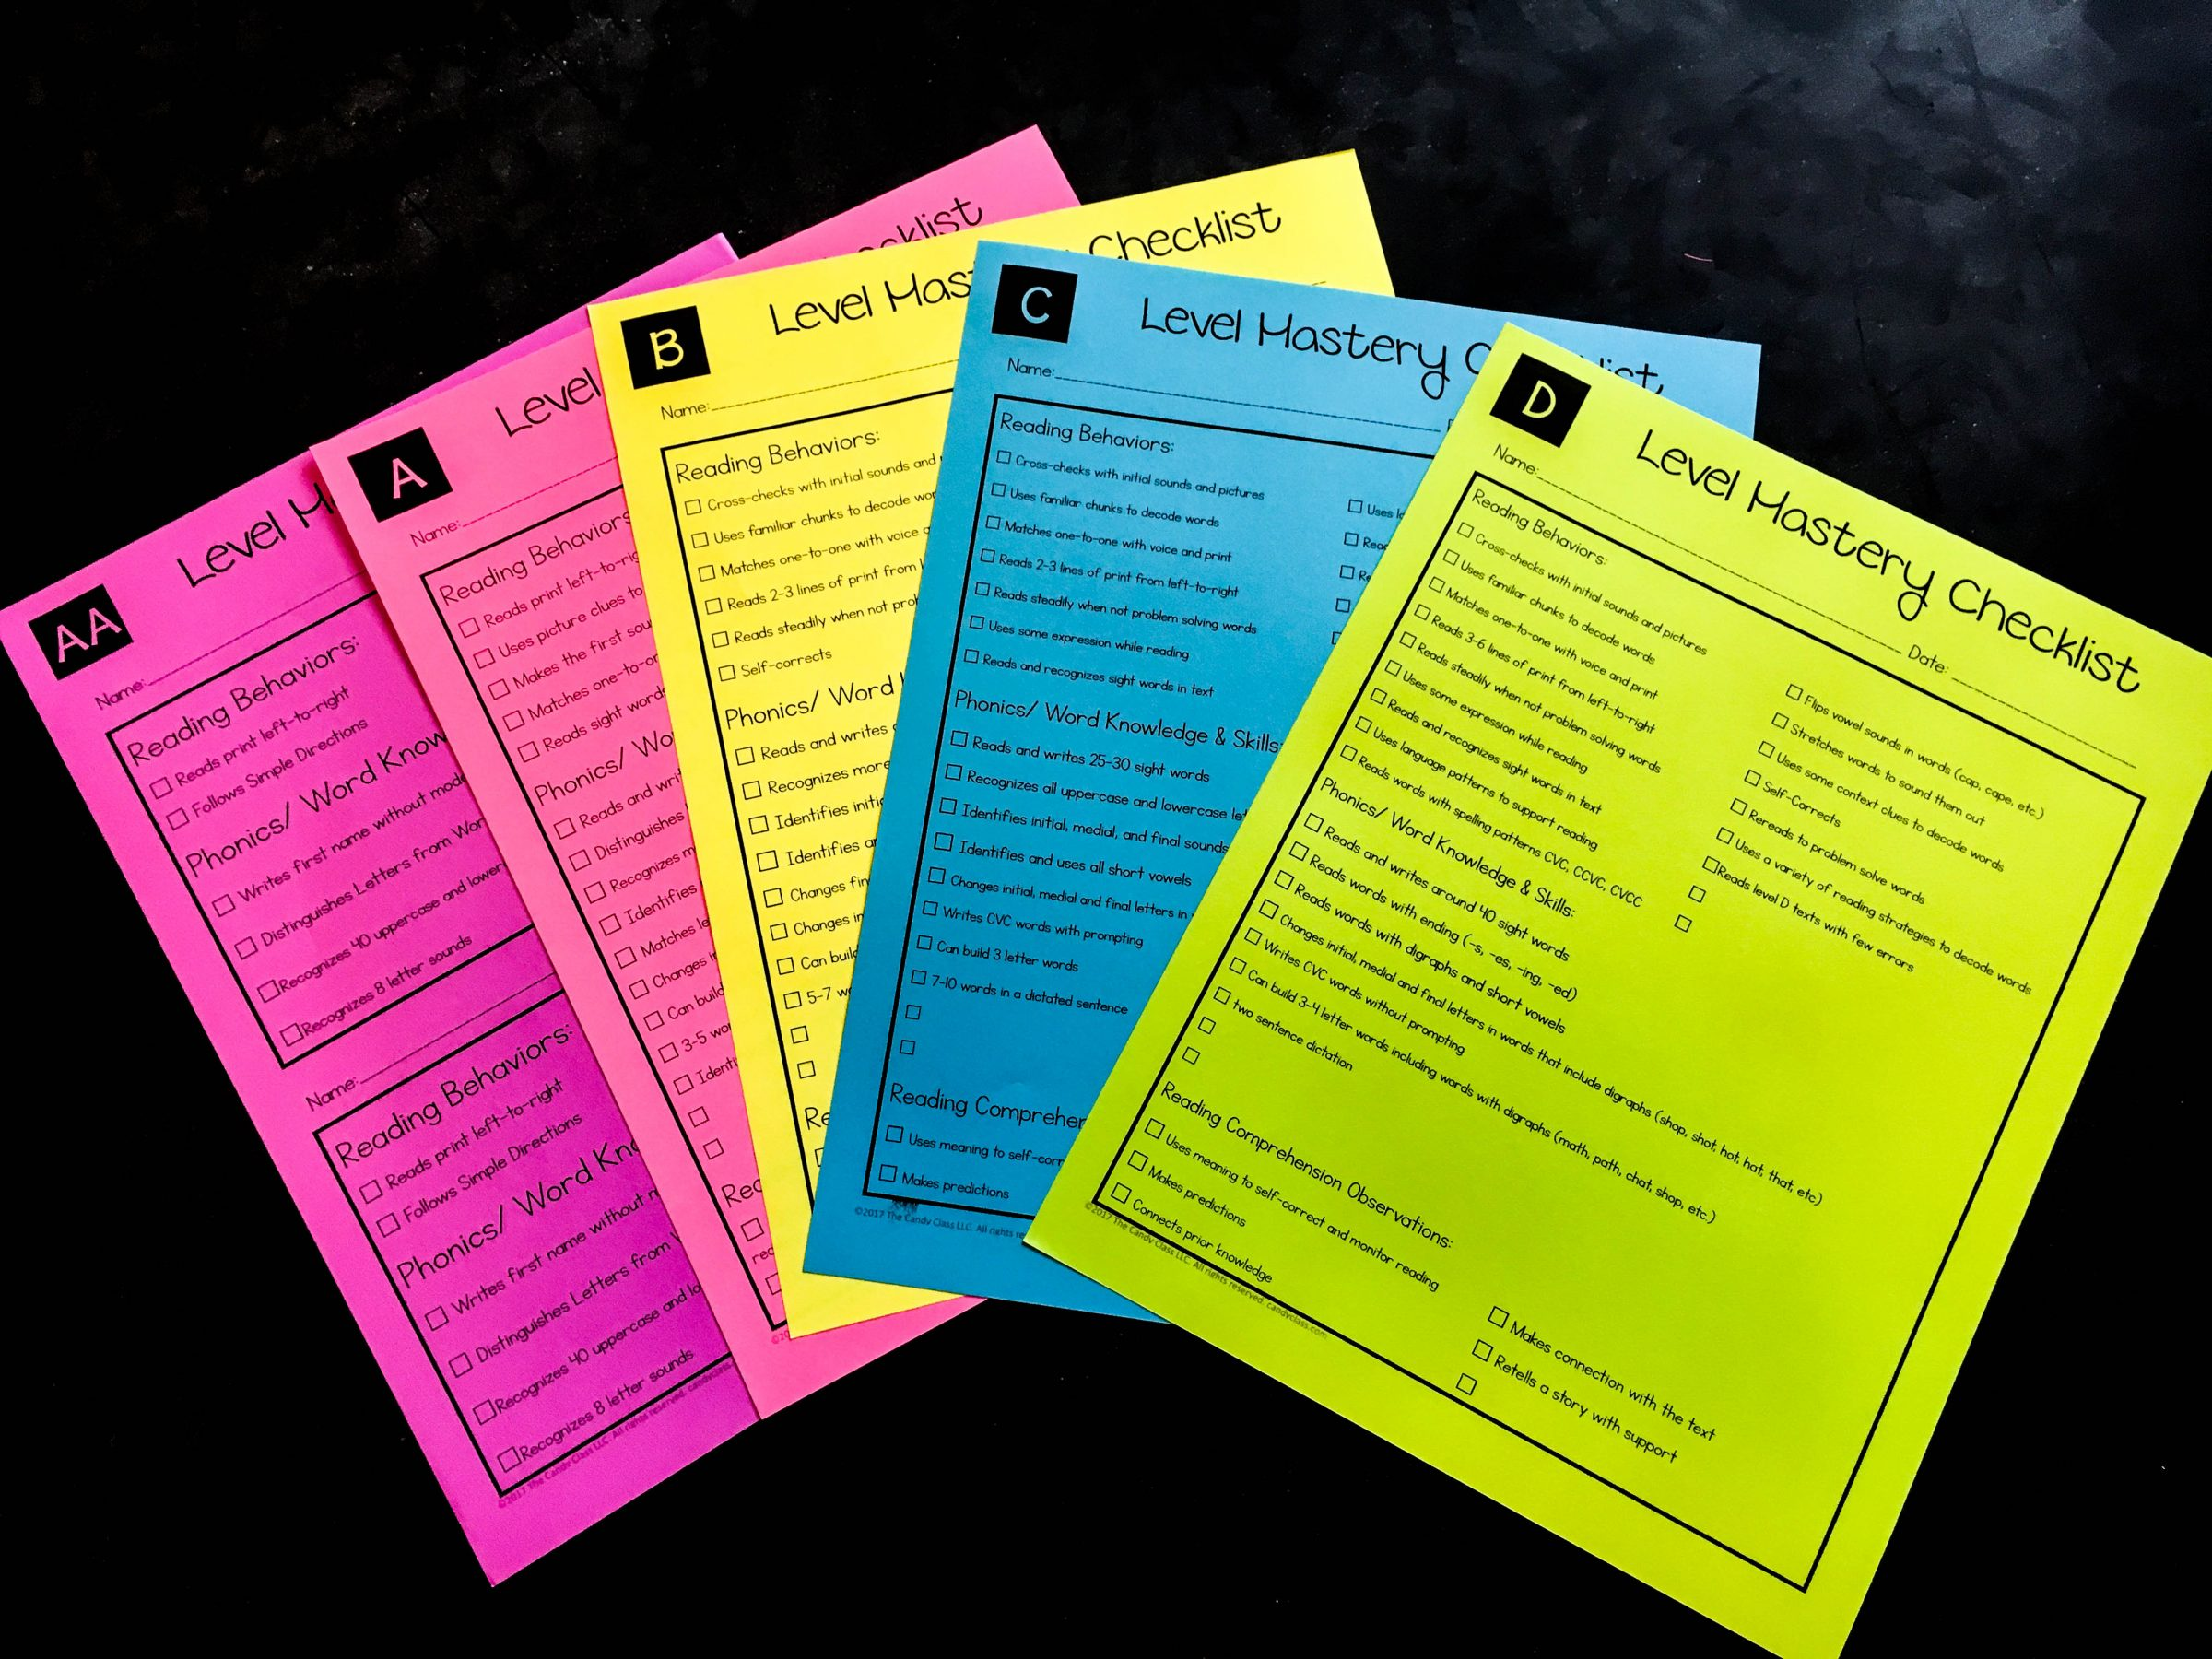 Guided Reading Level Mastery Checklist